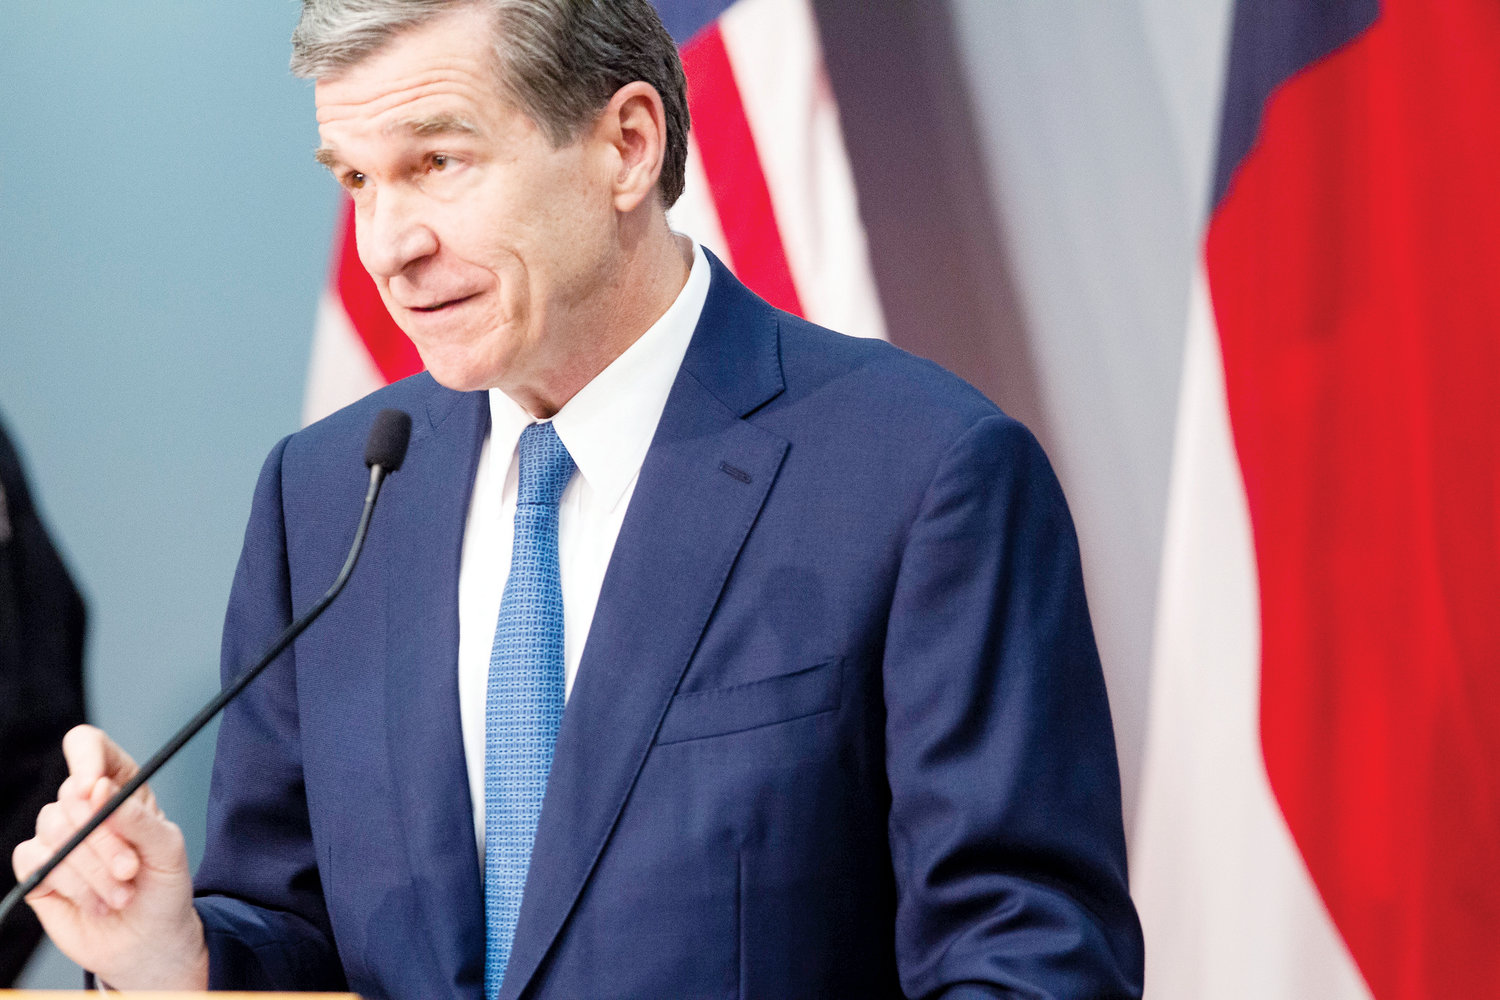 Gov. Roy Cooper delivers a briefing on North Carolina's coronavirus pandemic response Friday, April 3, 2020 at the NC Emergency Operations Center in Raleigh.